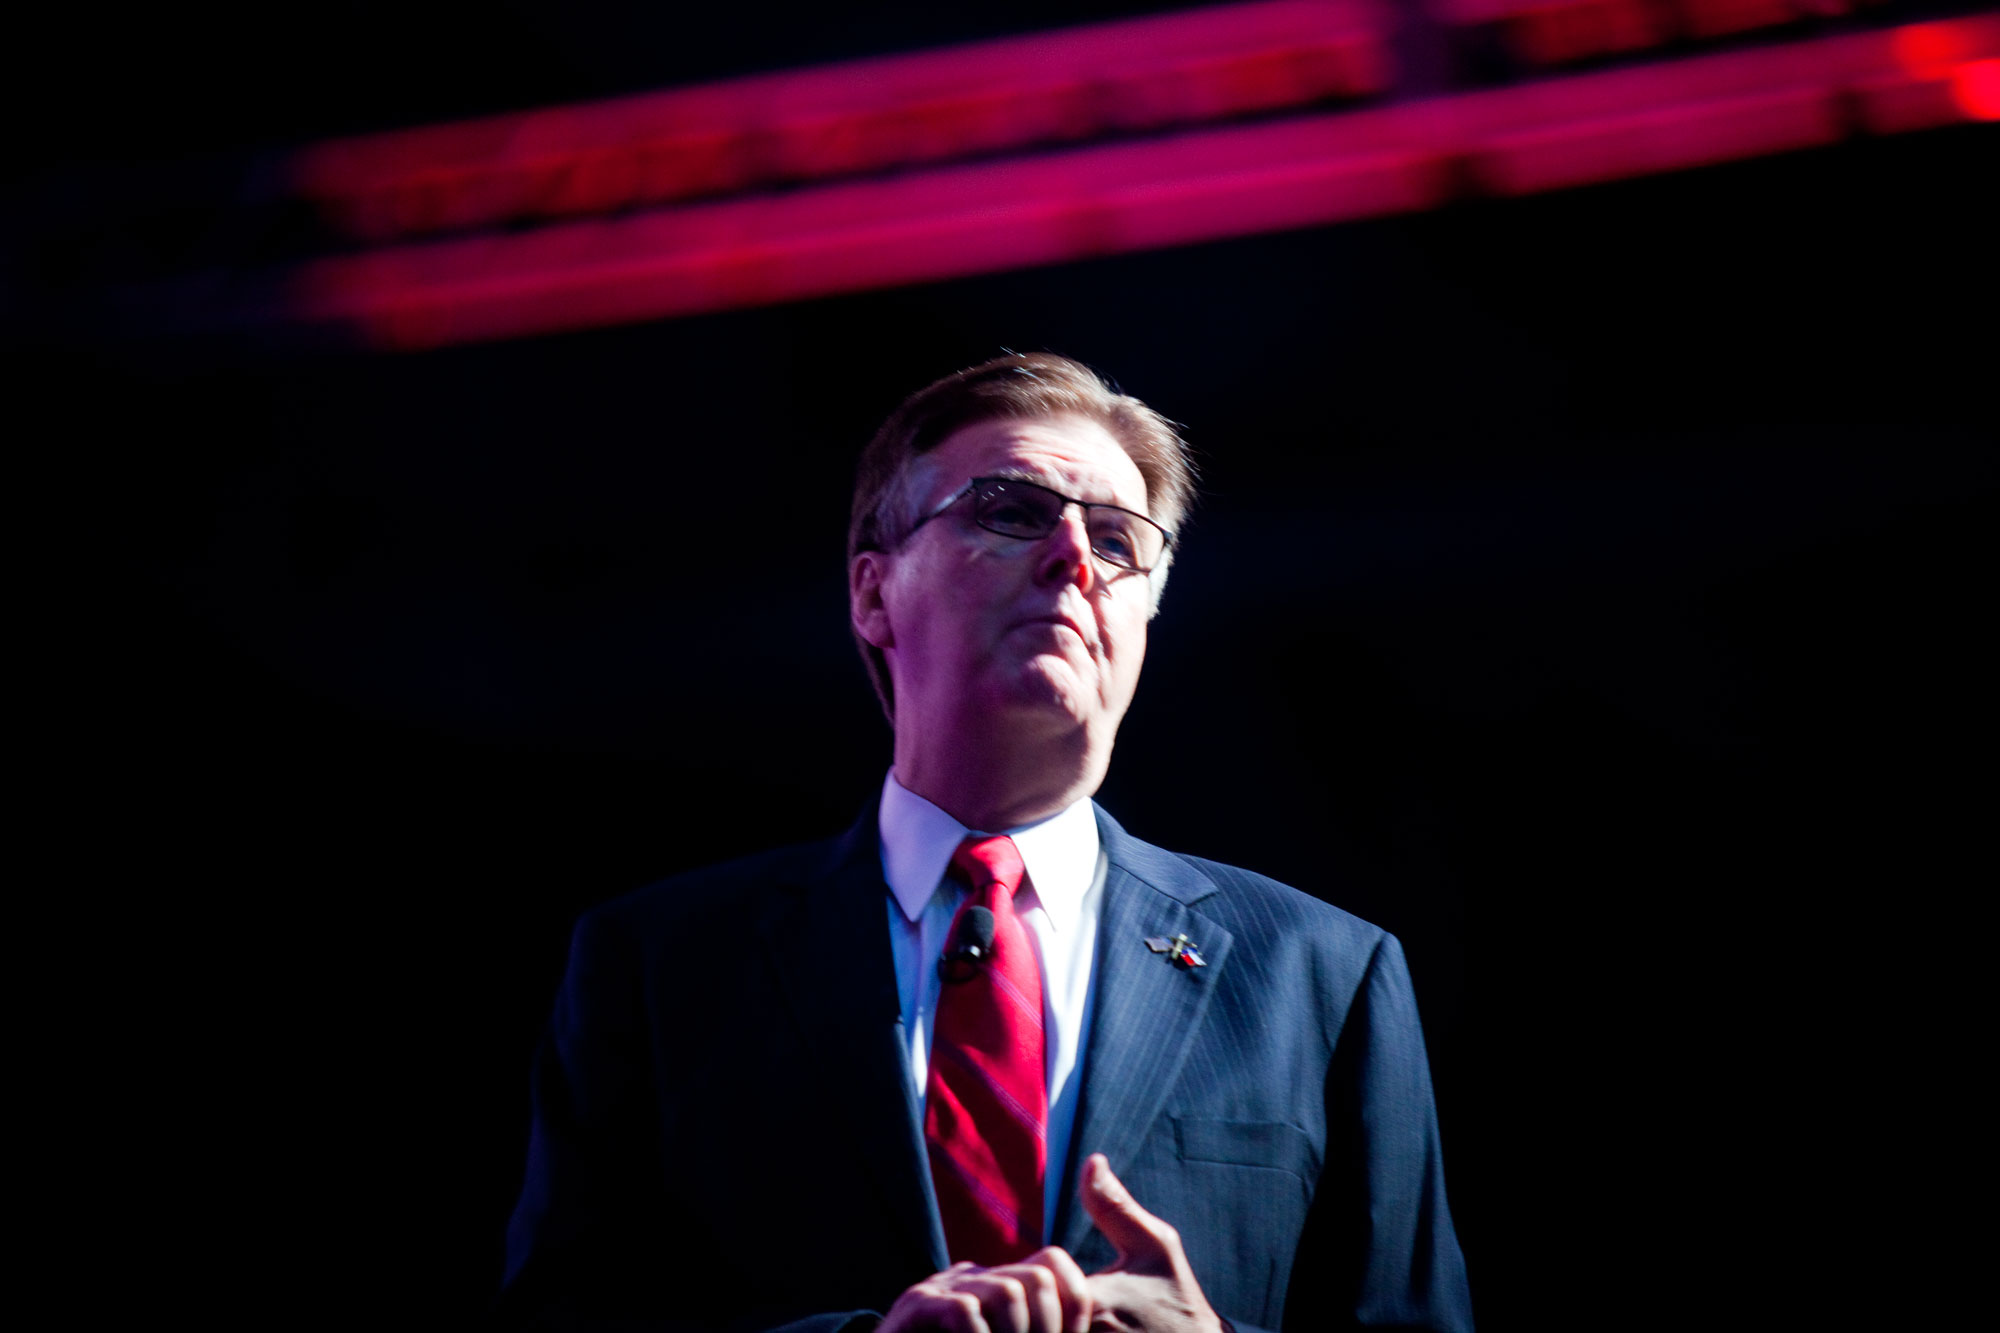 b3c4d0ea24 Lieutenant Governor Dan Patrick addresses the 2016 Republican Party of  Texas convention in Dallas. Patrick Michels